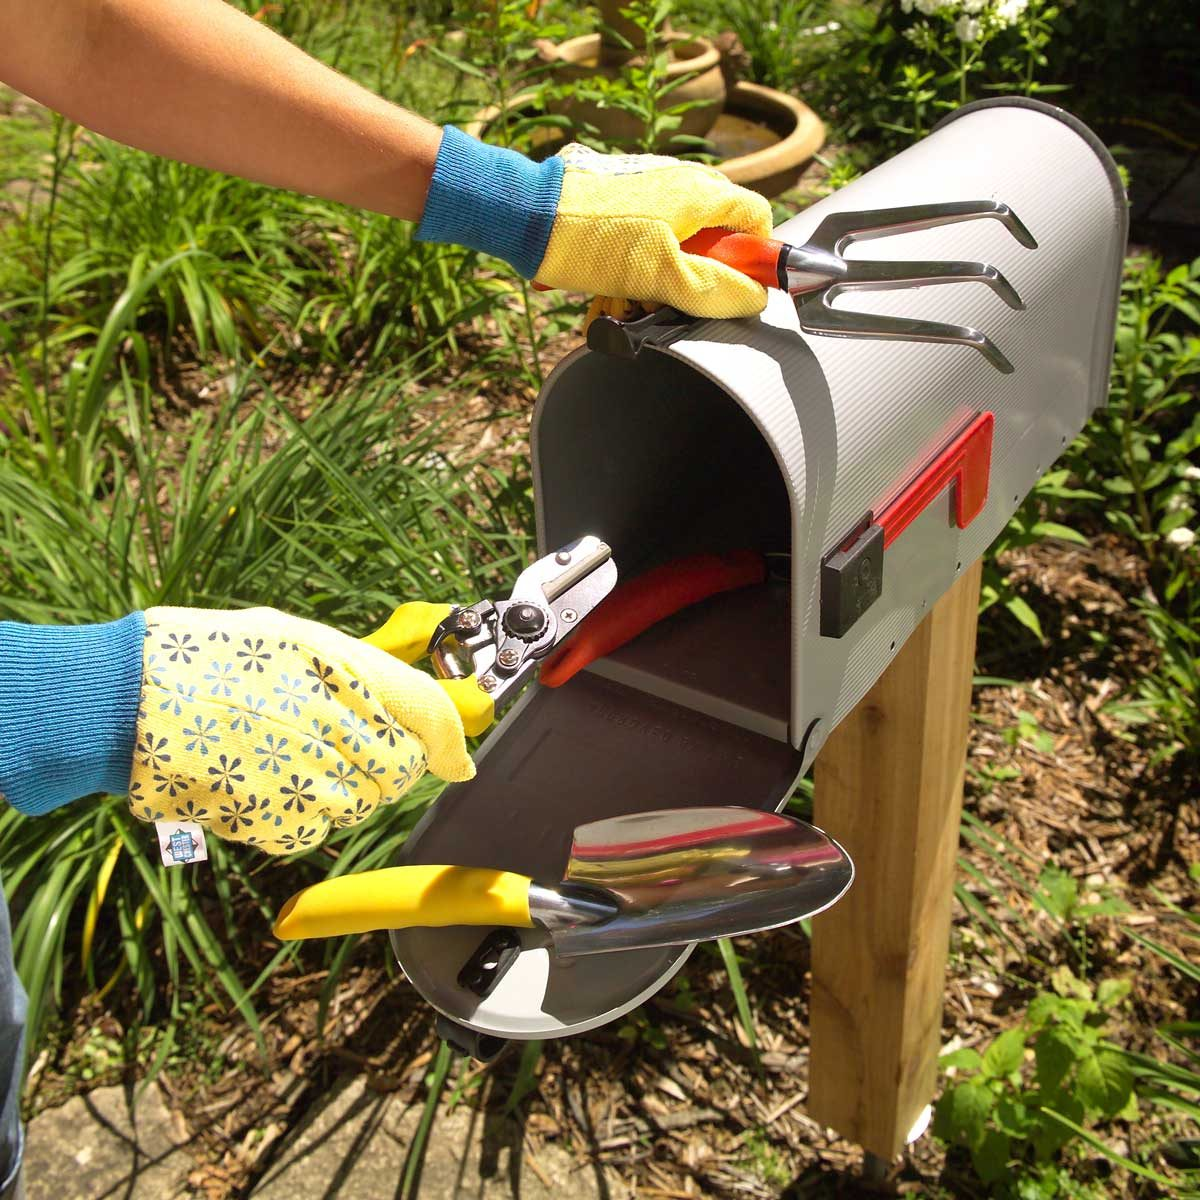 12 Ingenious Gardening and Yard Tool Storage Tips